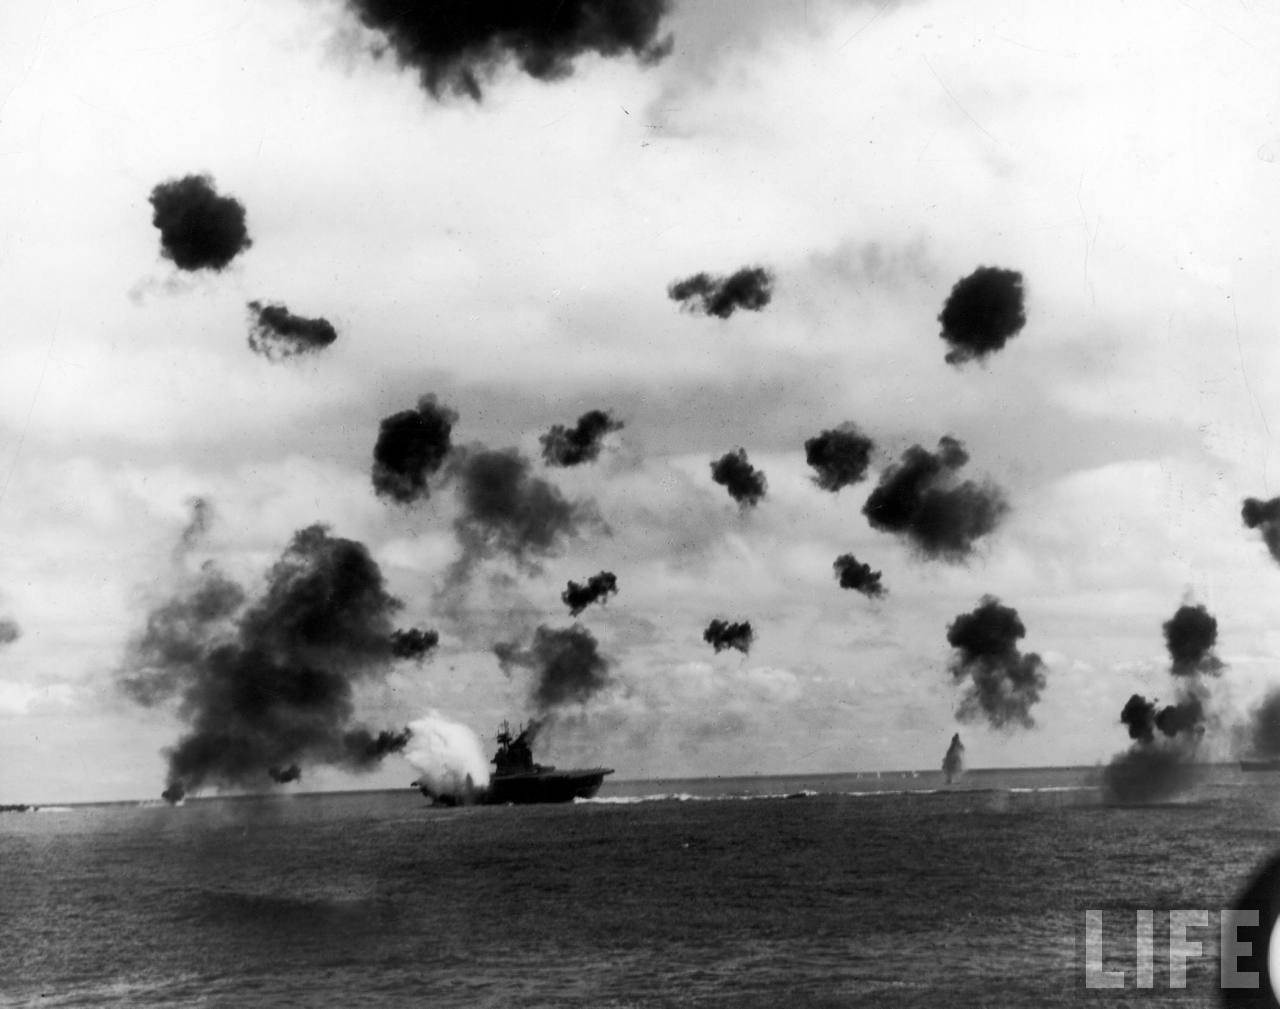 smoke-from-antiaircraft-guns-fills-the-sky-as-aircraft-carrier-uss-yorktown-rear-c-is-hit-by-a-japanese-torpedo-during-the-battle-of-midway